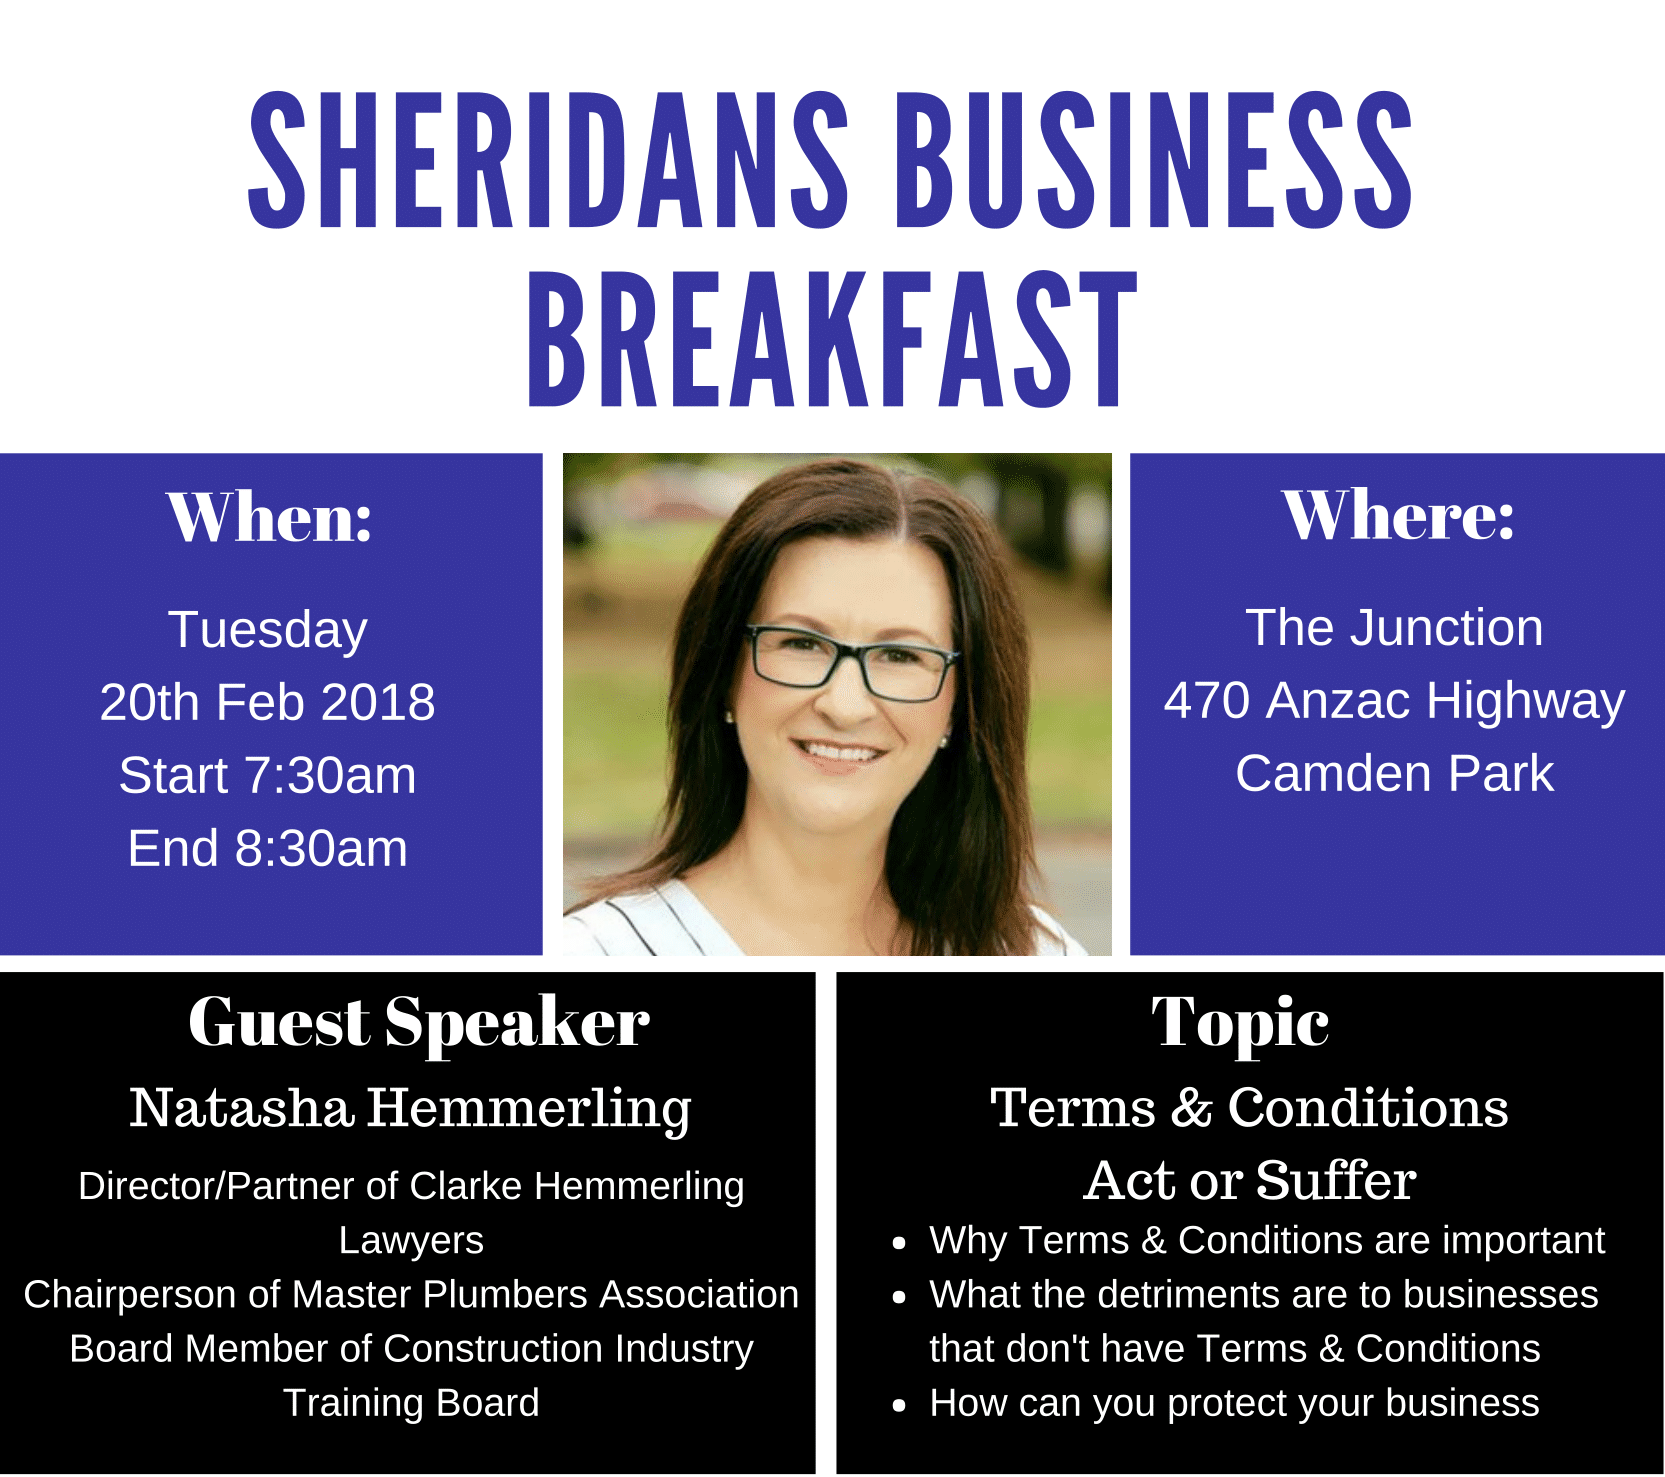 Sheridans Business Breakfast